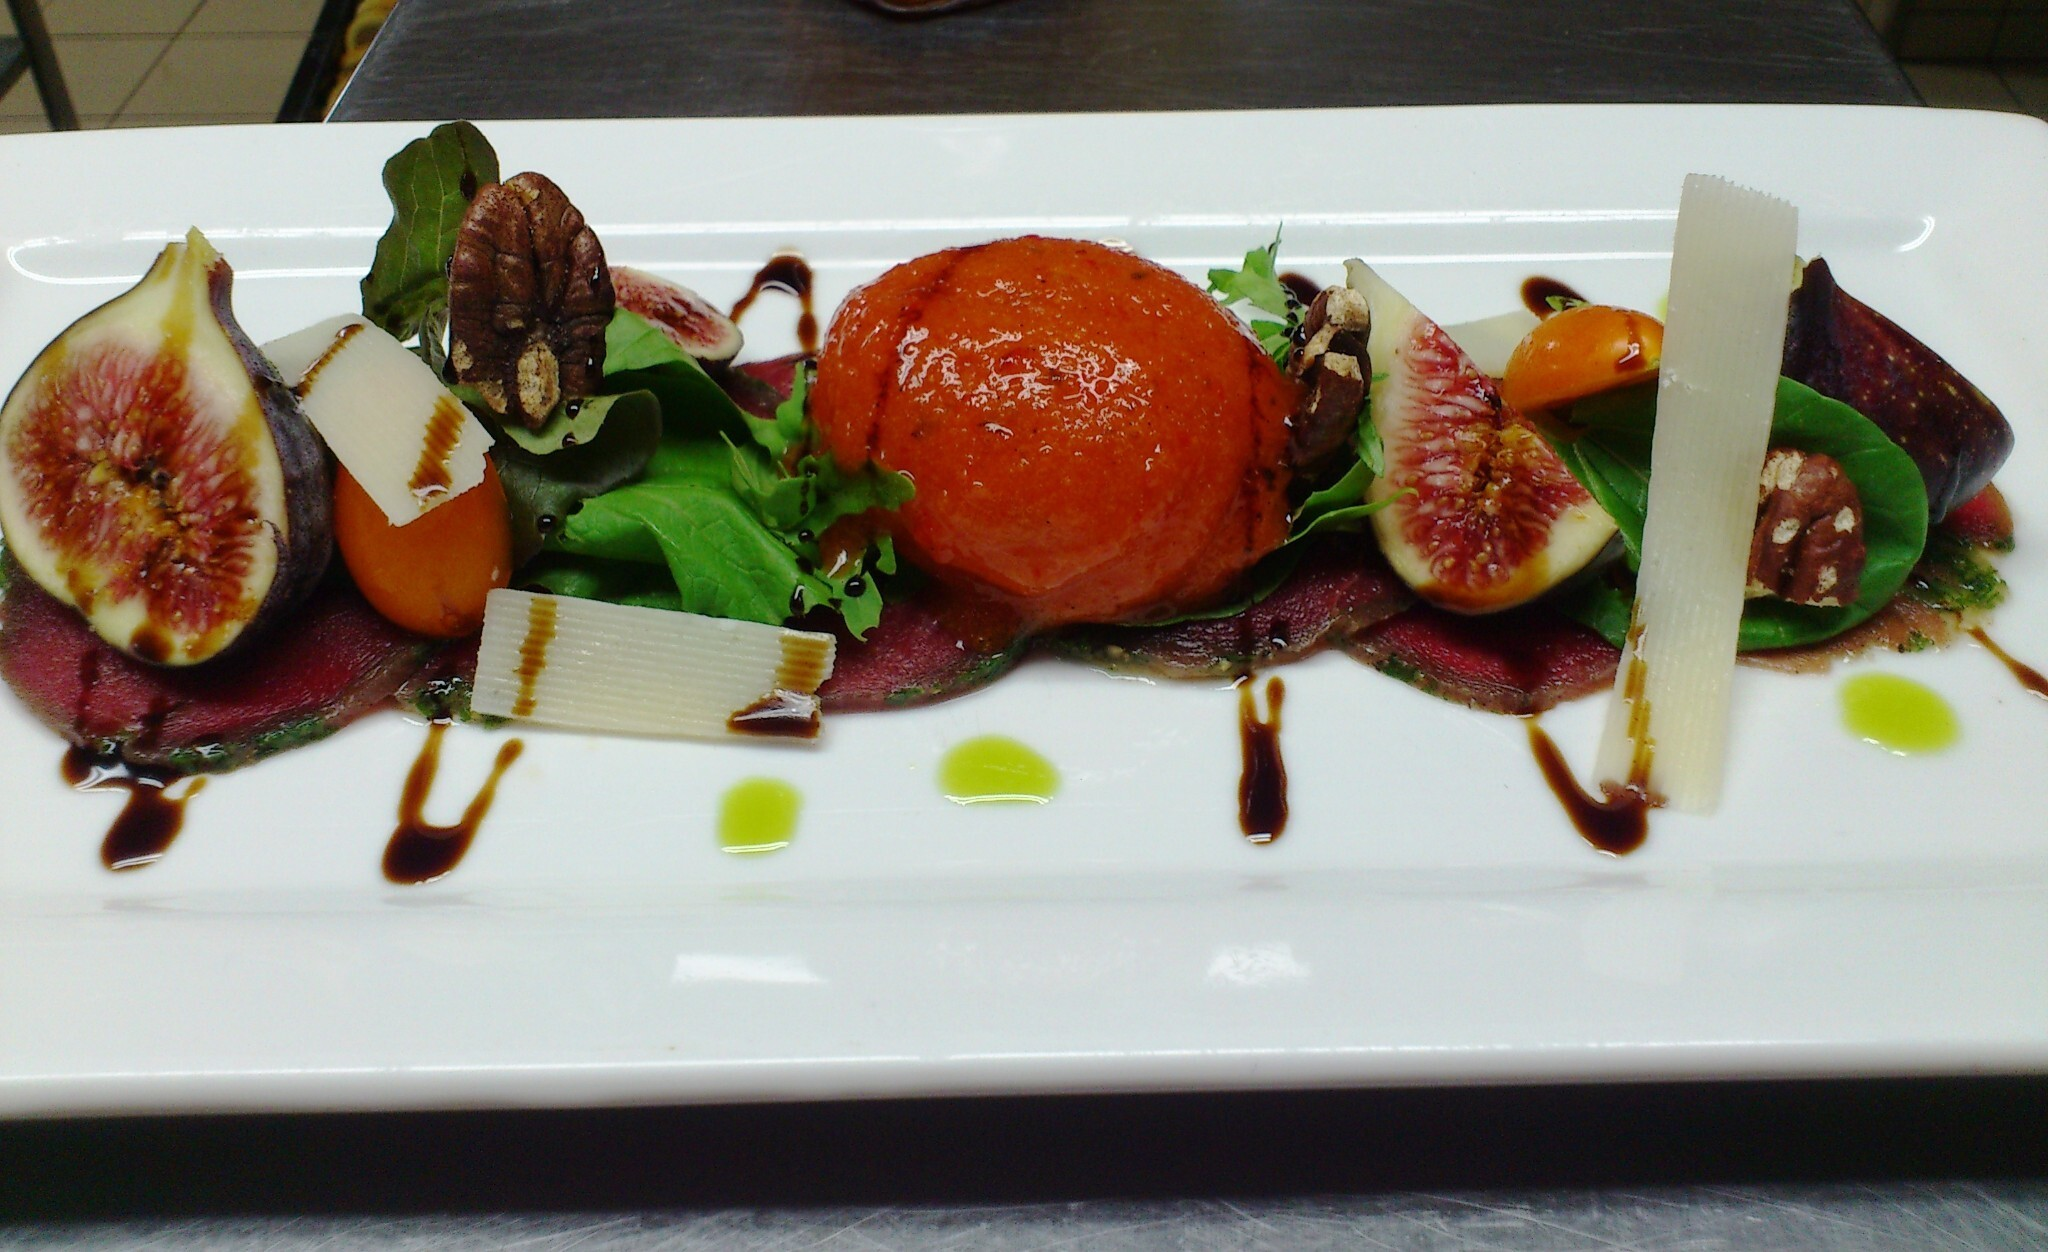 Beef Carpaccio with Roasted Red Pepper Sorbet, Fresh Figs, Pecan Nuts and Parmesan shavings